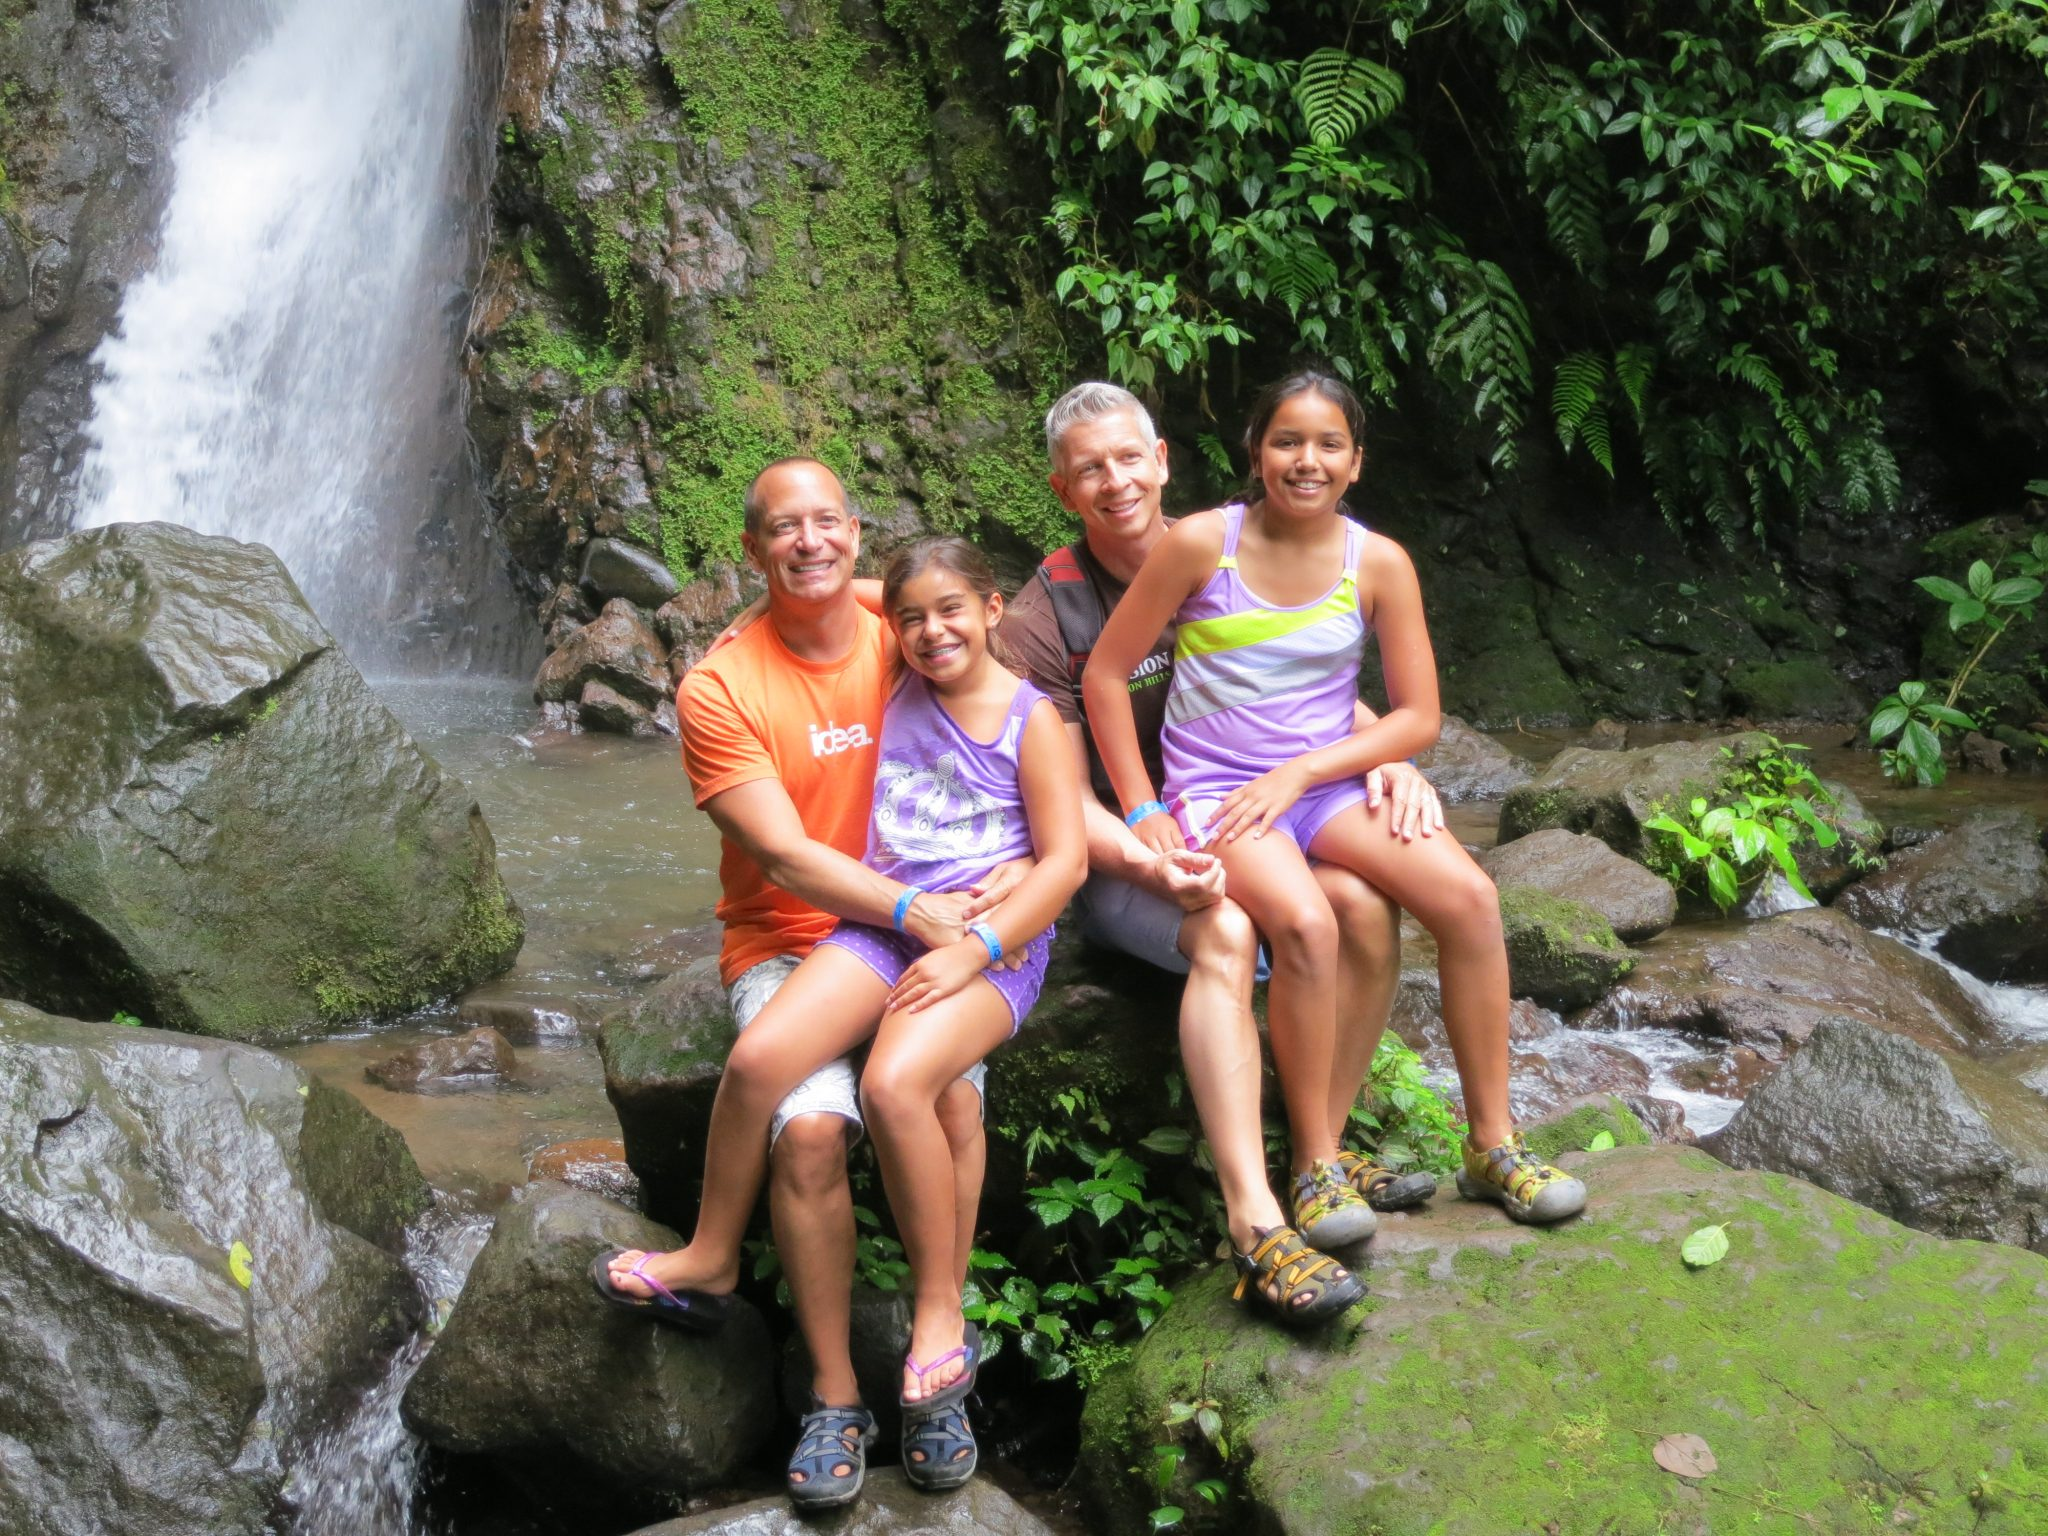 family with two dads at jungle waterfall in Costa Rica